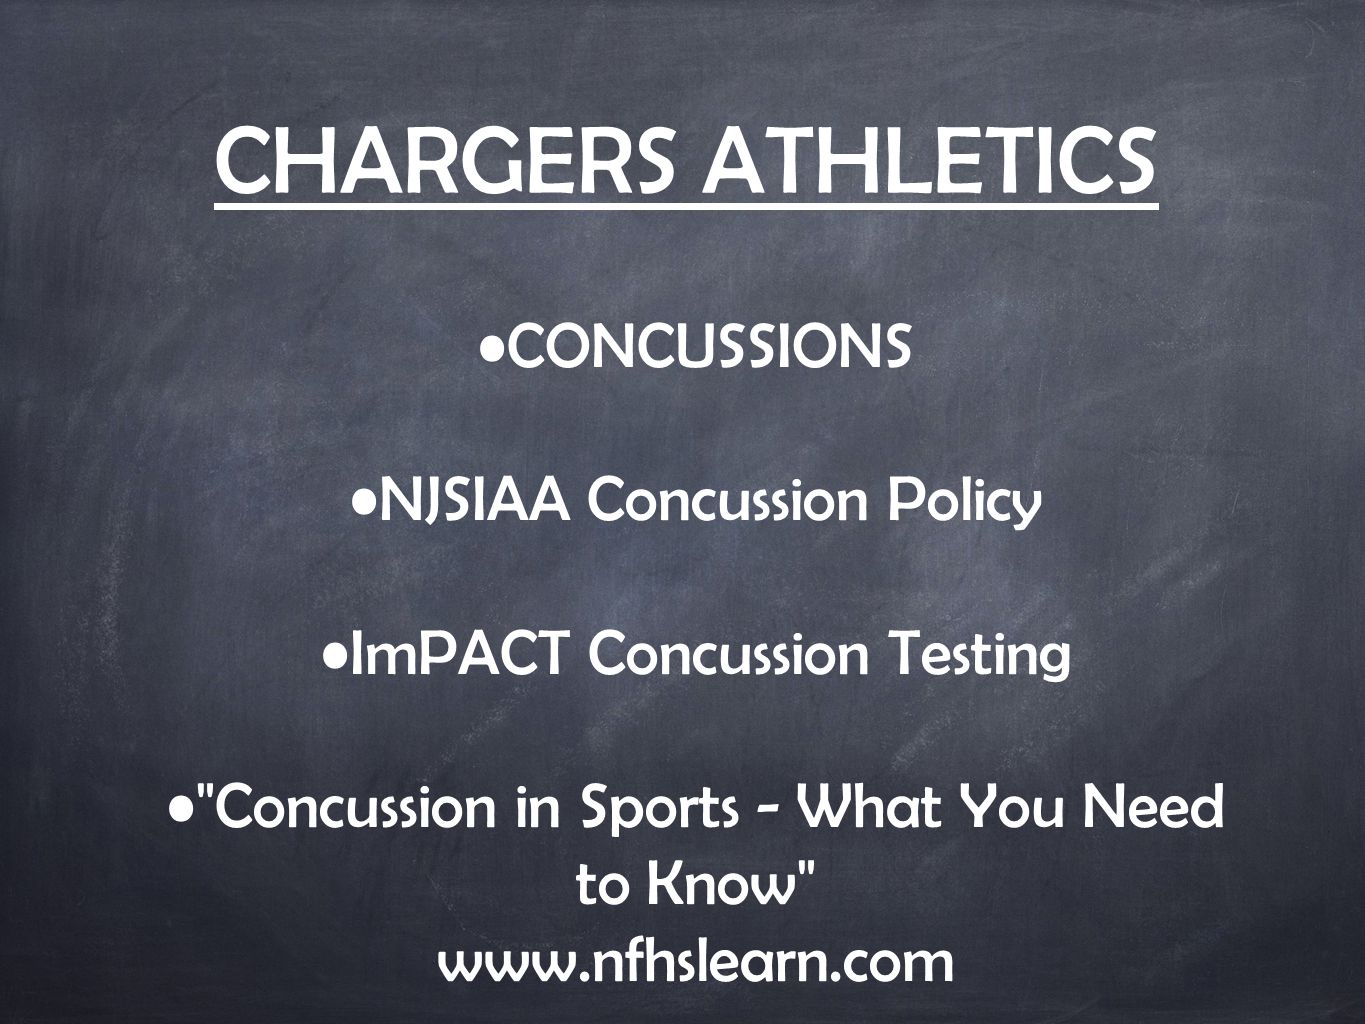 CHARGERS ATHLETICS CONCUSSIONS NJSIAA Concussion Policy ImPACT Concussion Testing Concussion in Sports - What You Need to Know www.nfhslearn.com